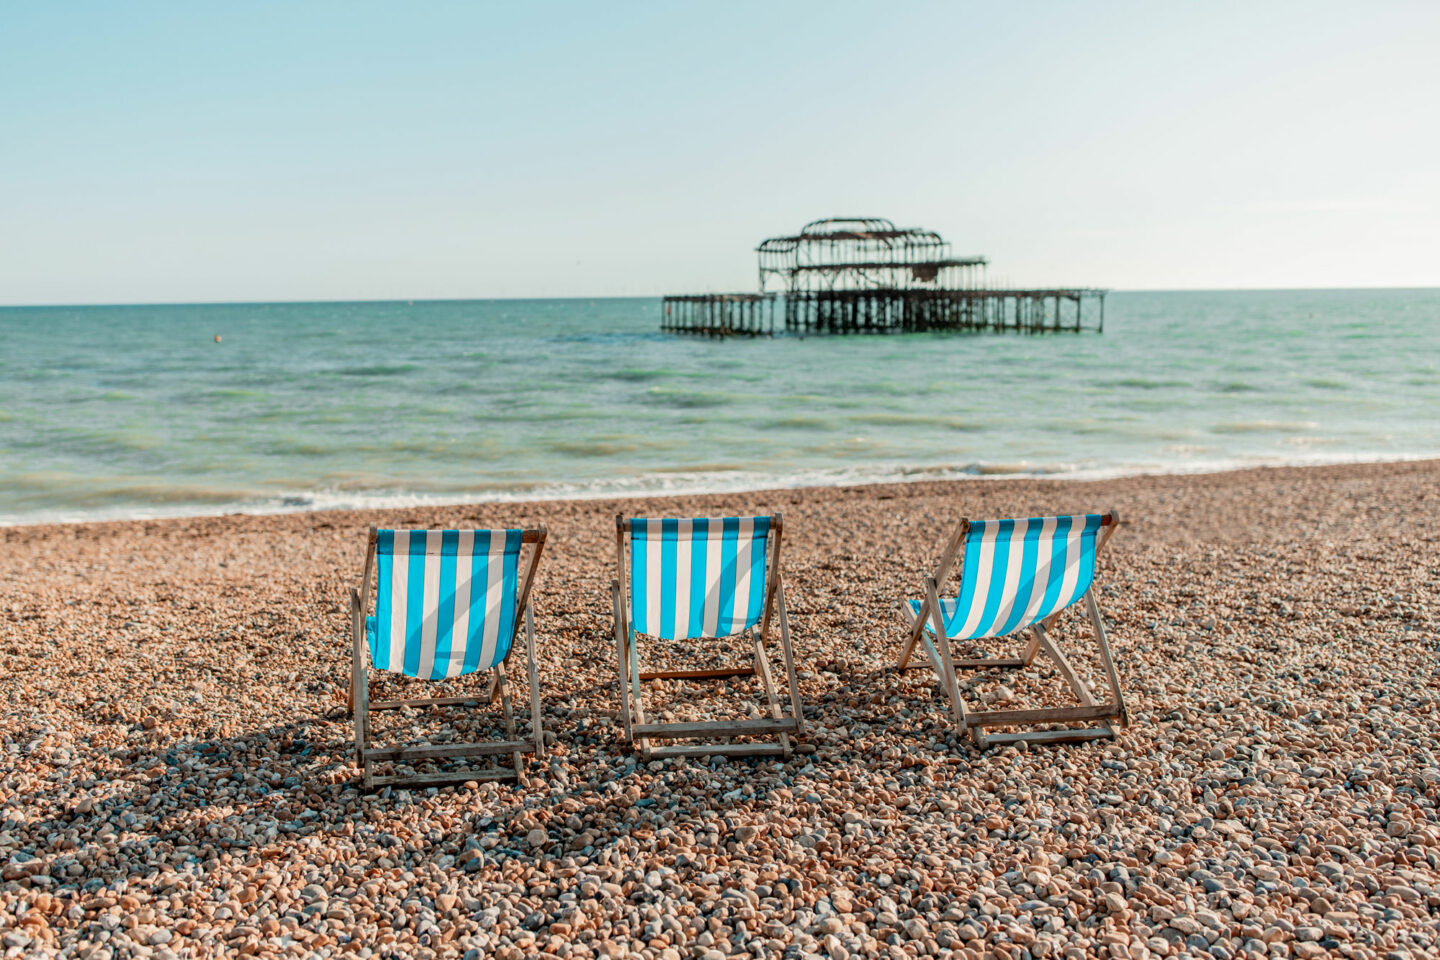 things-to-do-in-brighton-Bucket-list--Instagram-Story-Template--kelseyinlondon-Kelsey-Heinrichs-brighton_beach.jpg